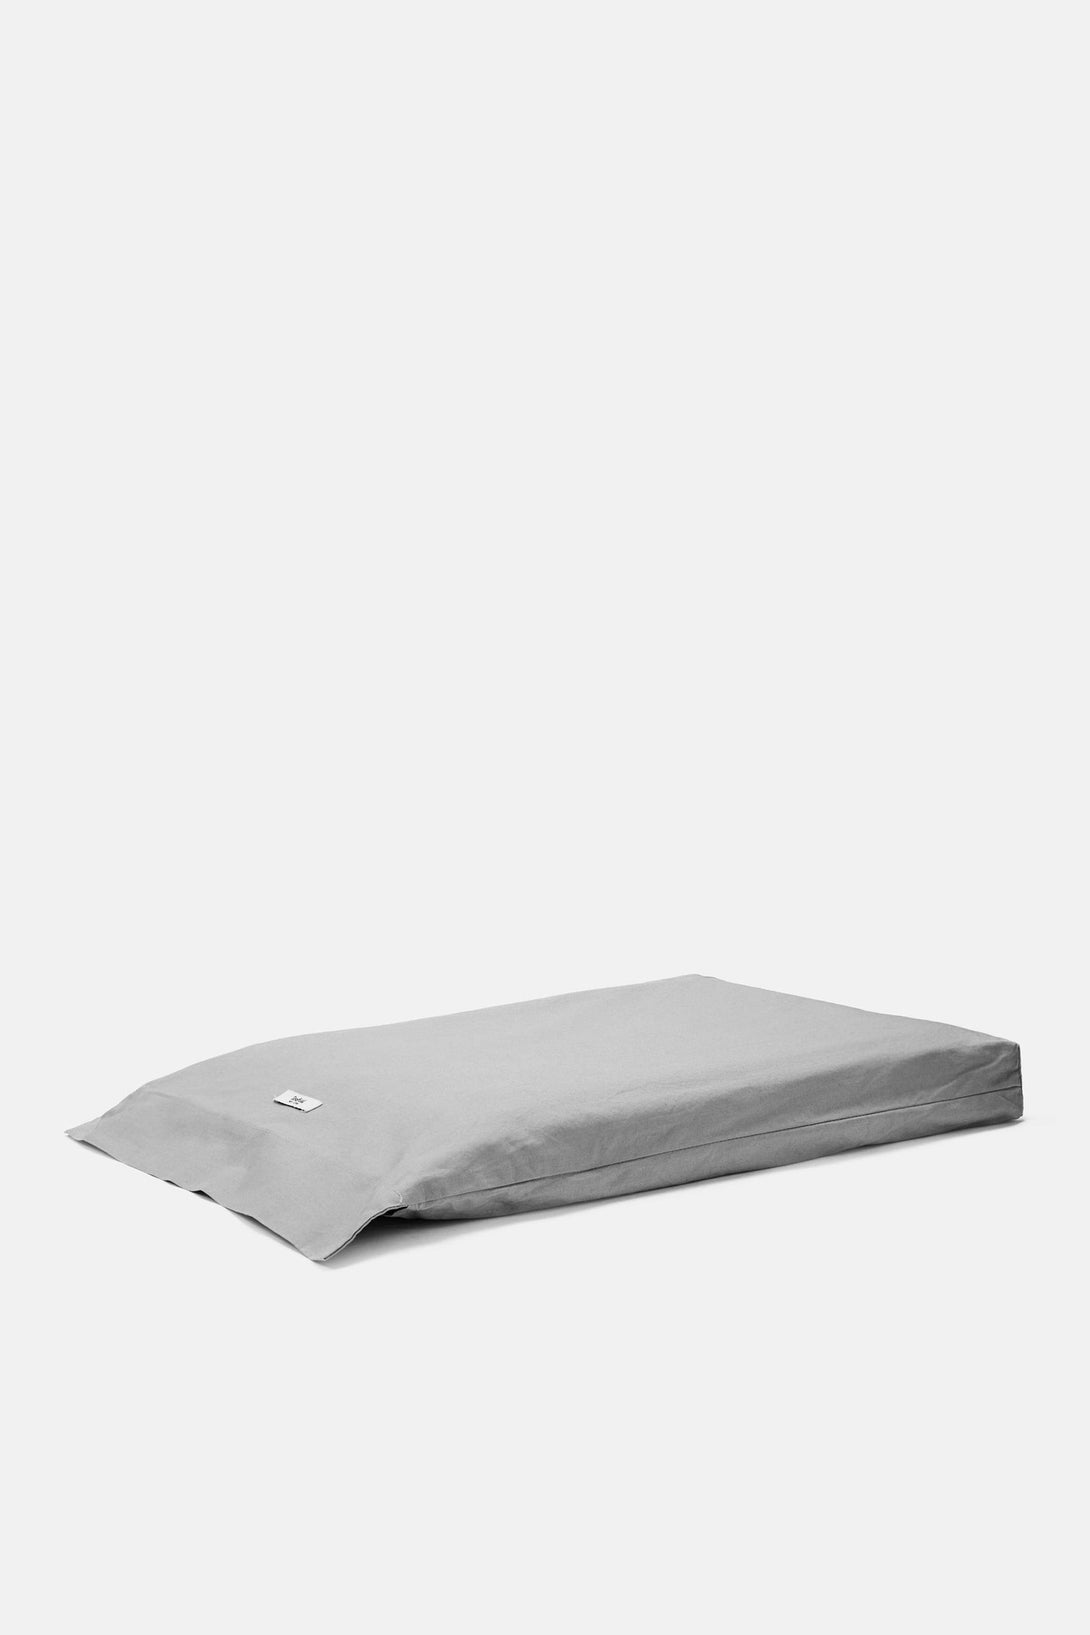 Washed Percale King/Cali King Flat Sheet - Graphite